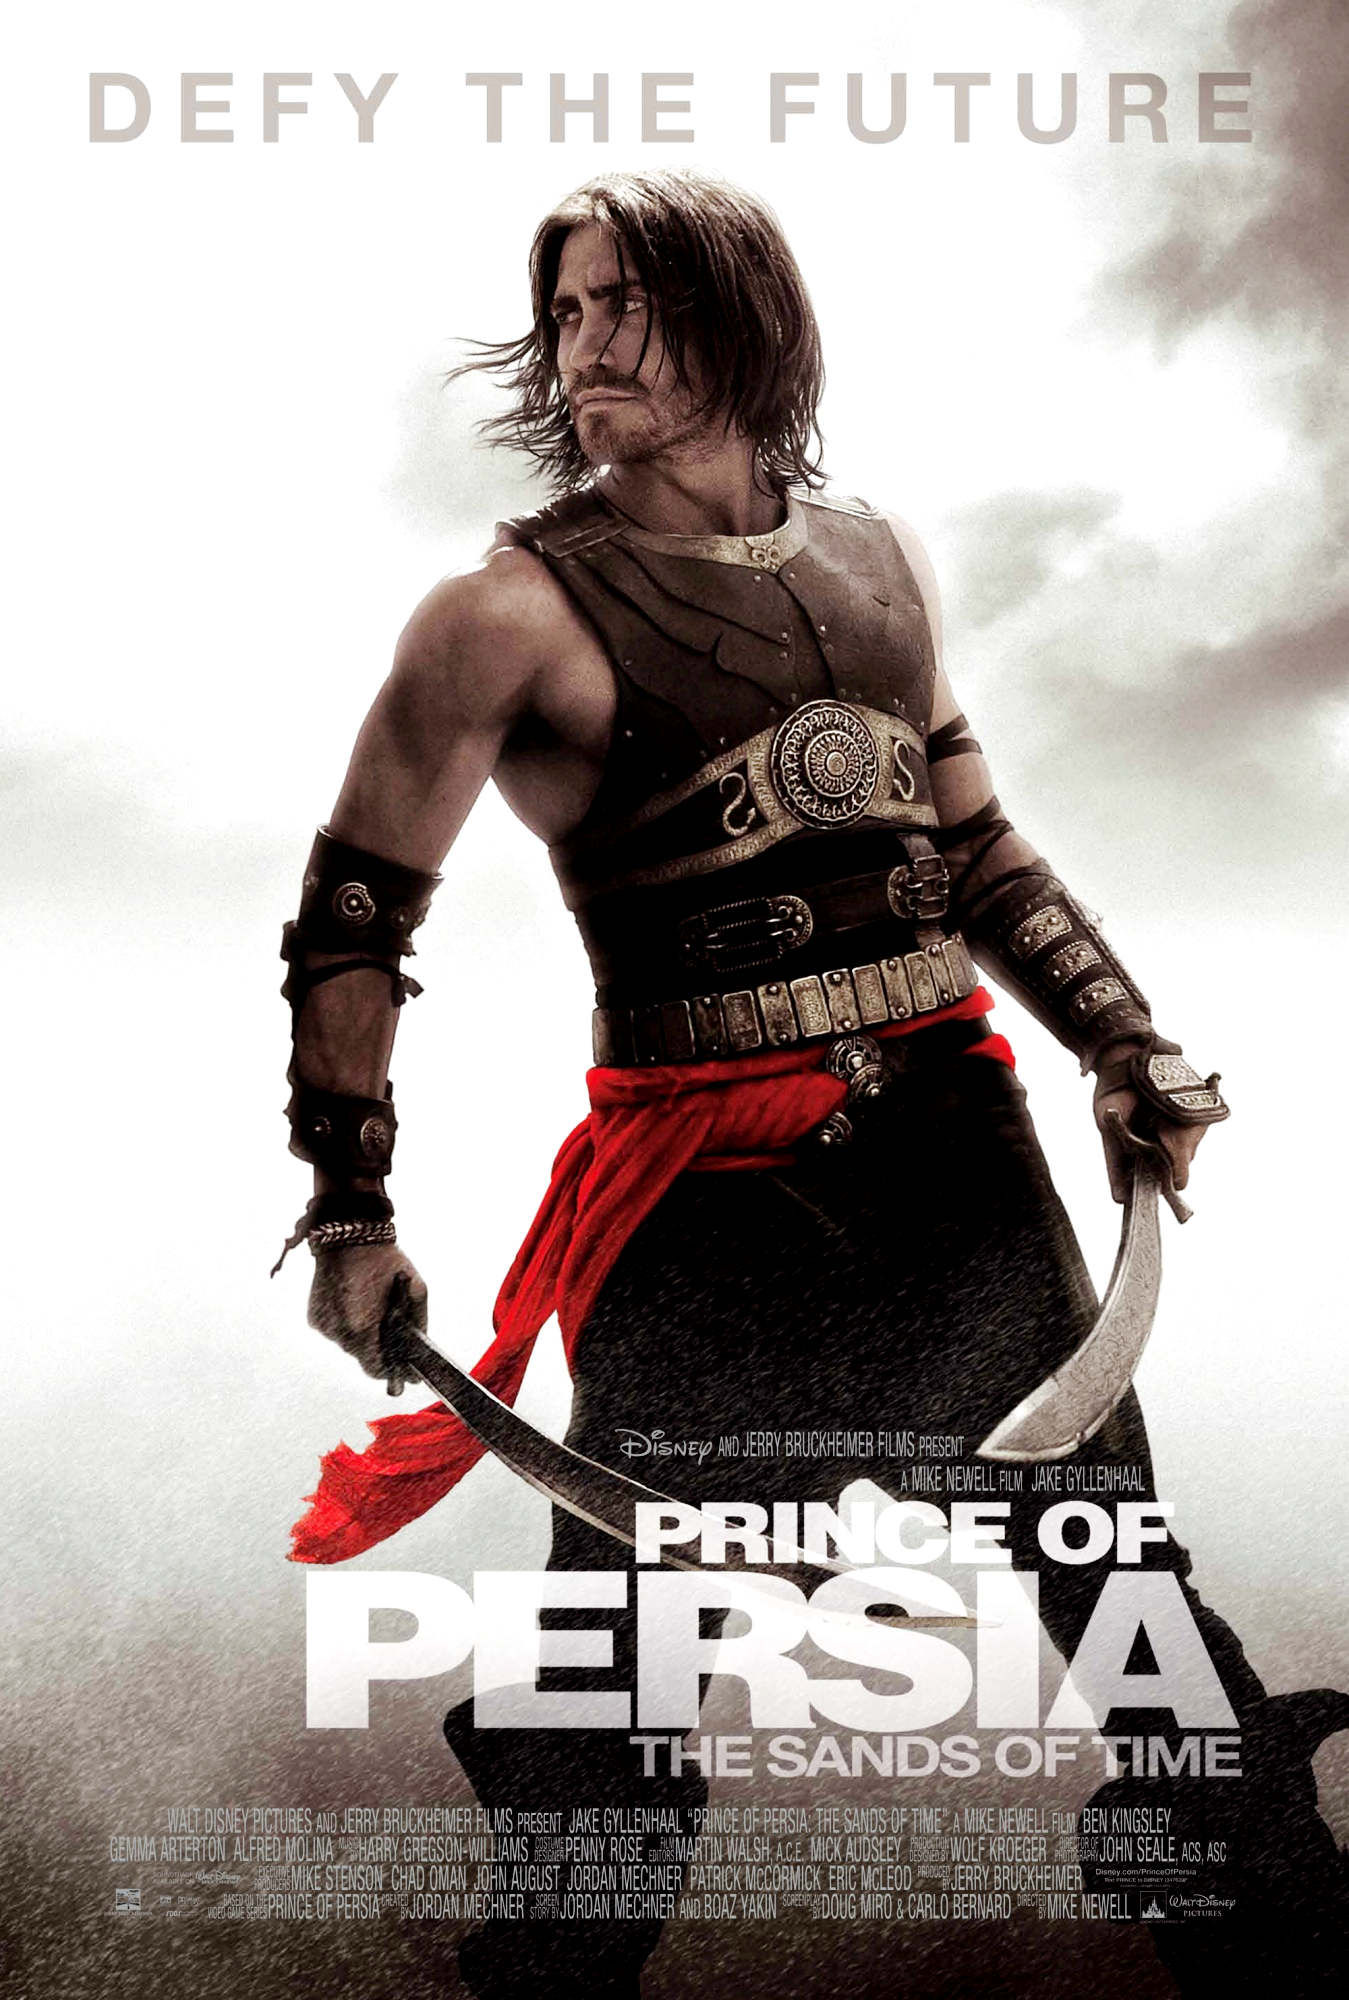 You are currently viewing Notes On A Film – Prince Of Persia: The Sands Of Time